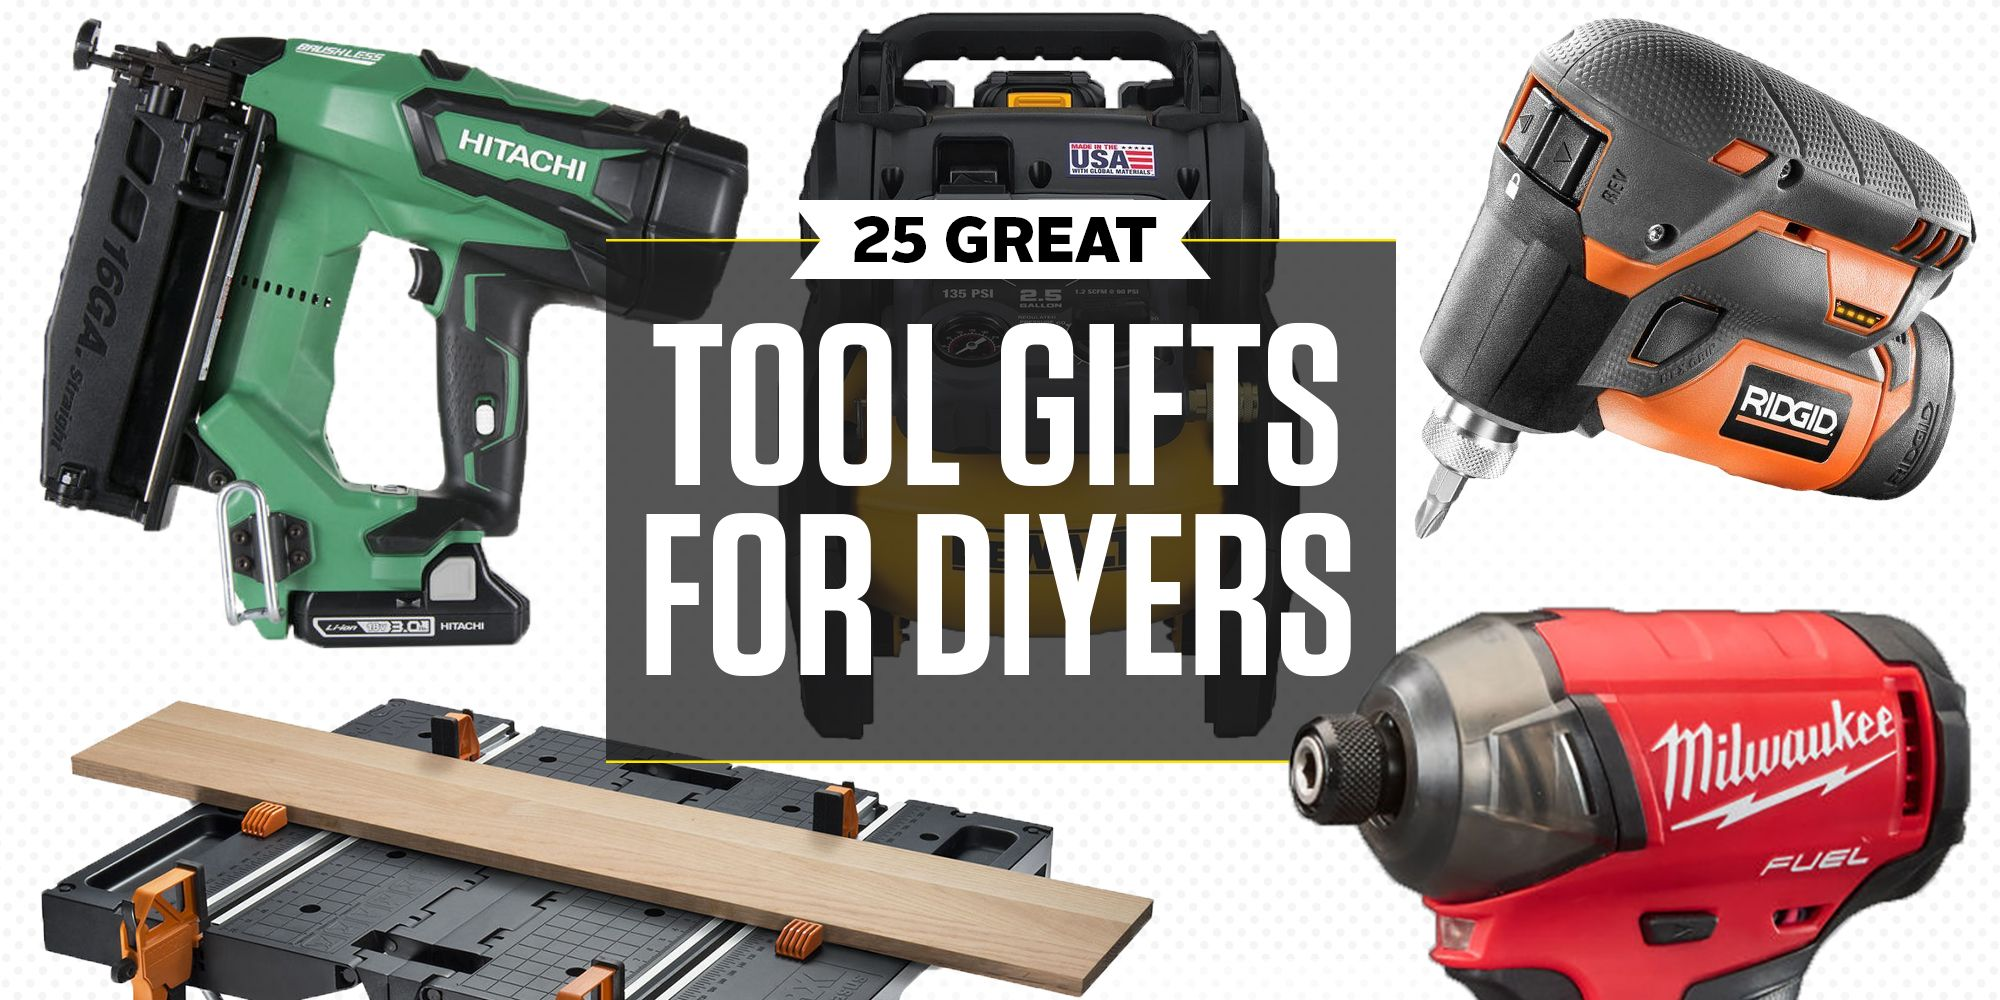 25 Best Gifts for Mechanics DIY Tool Gifts for Christmas 2017